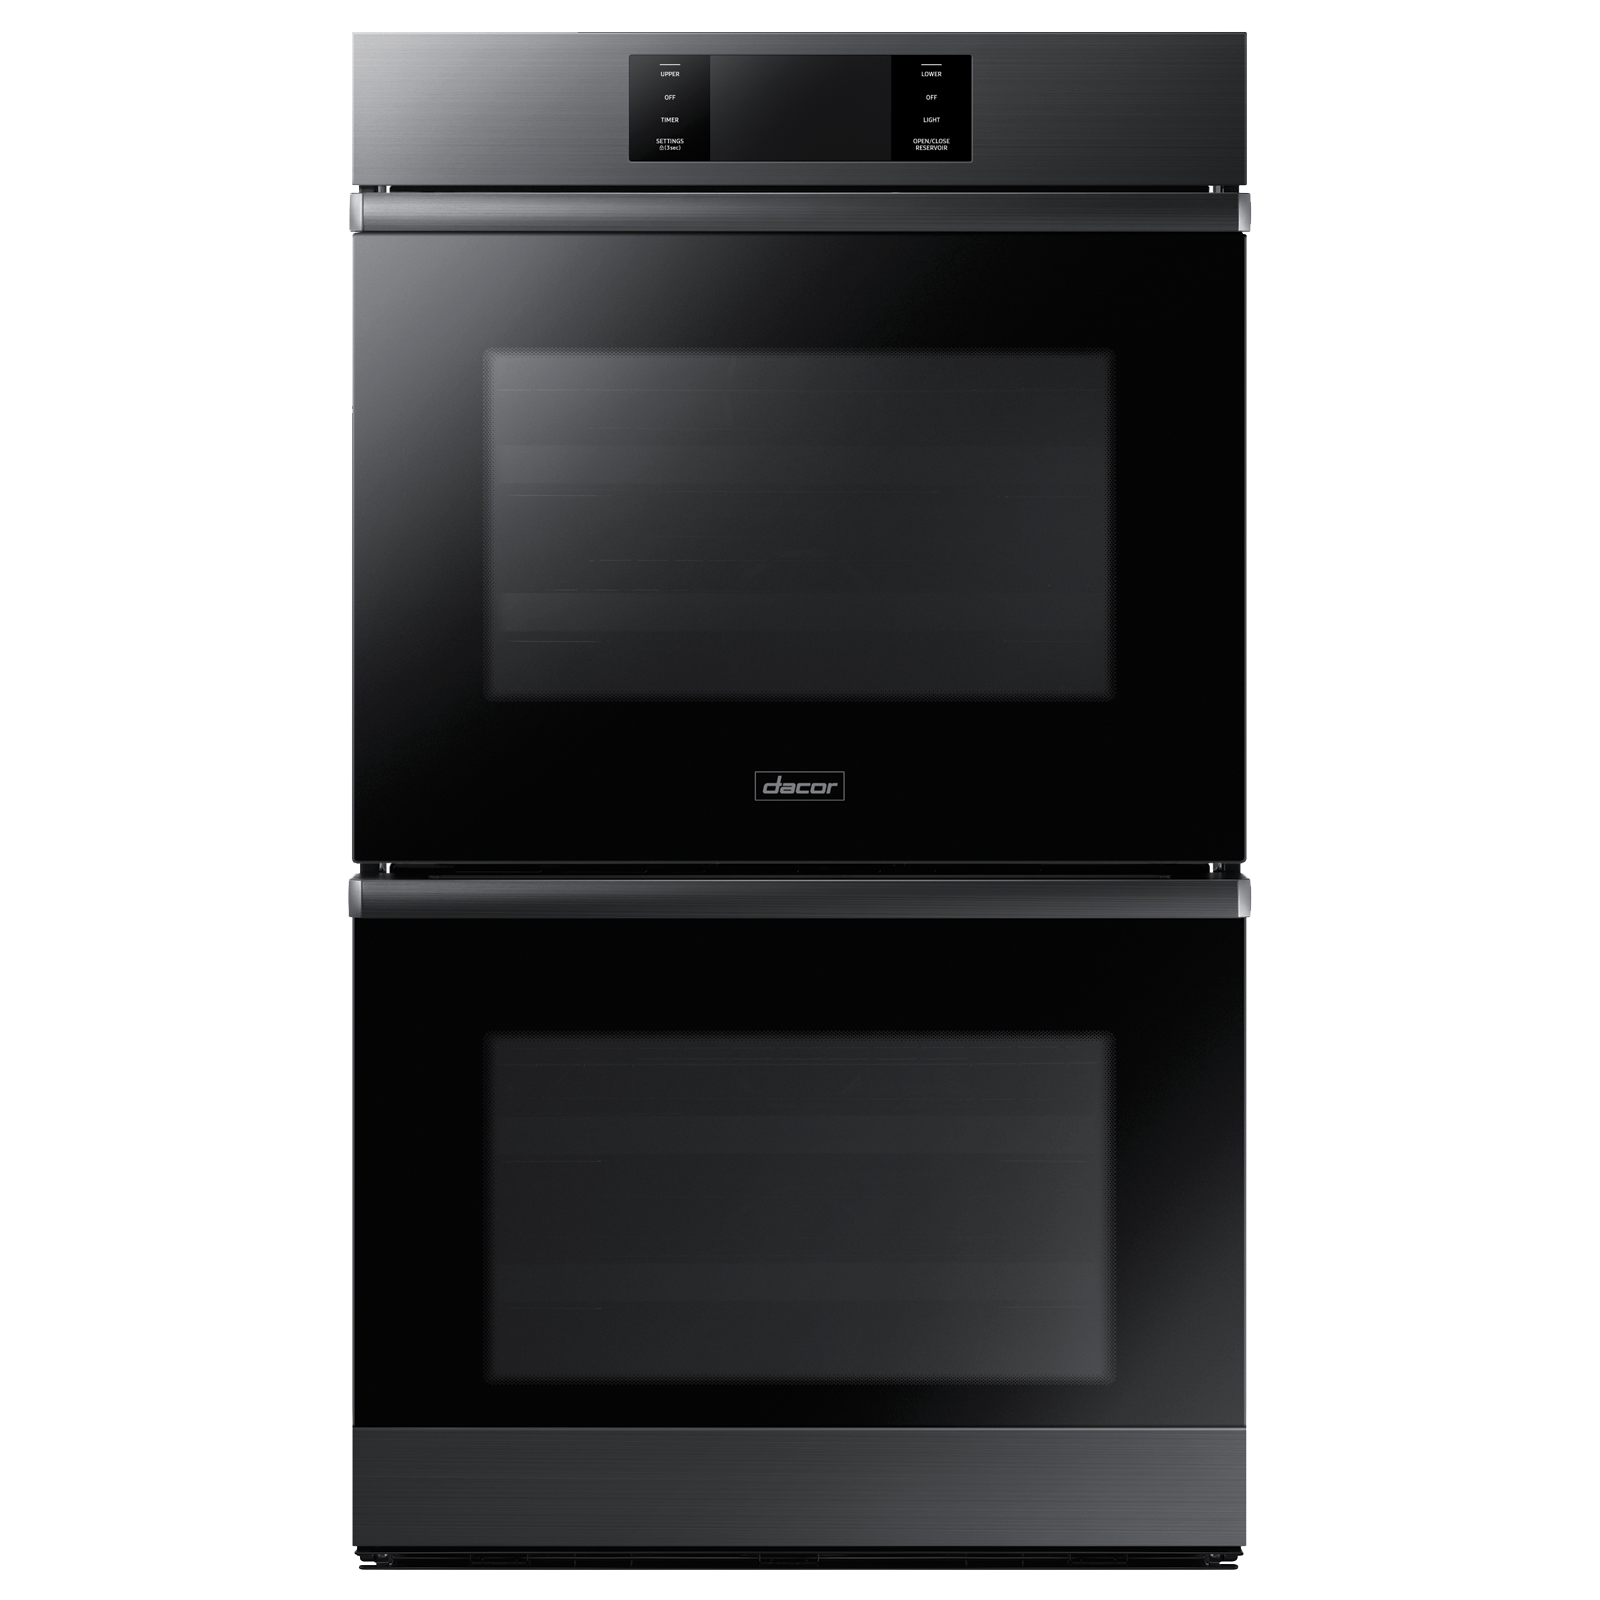 "Dacor Modernist 30"" Combi Wall Oven, Stainless Steel"